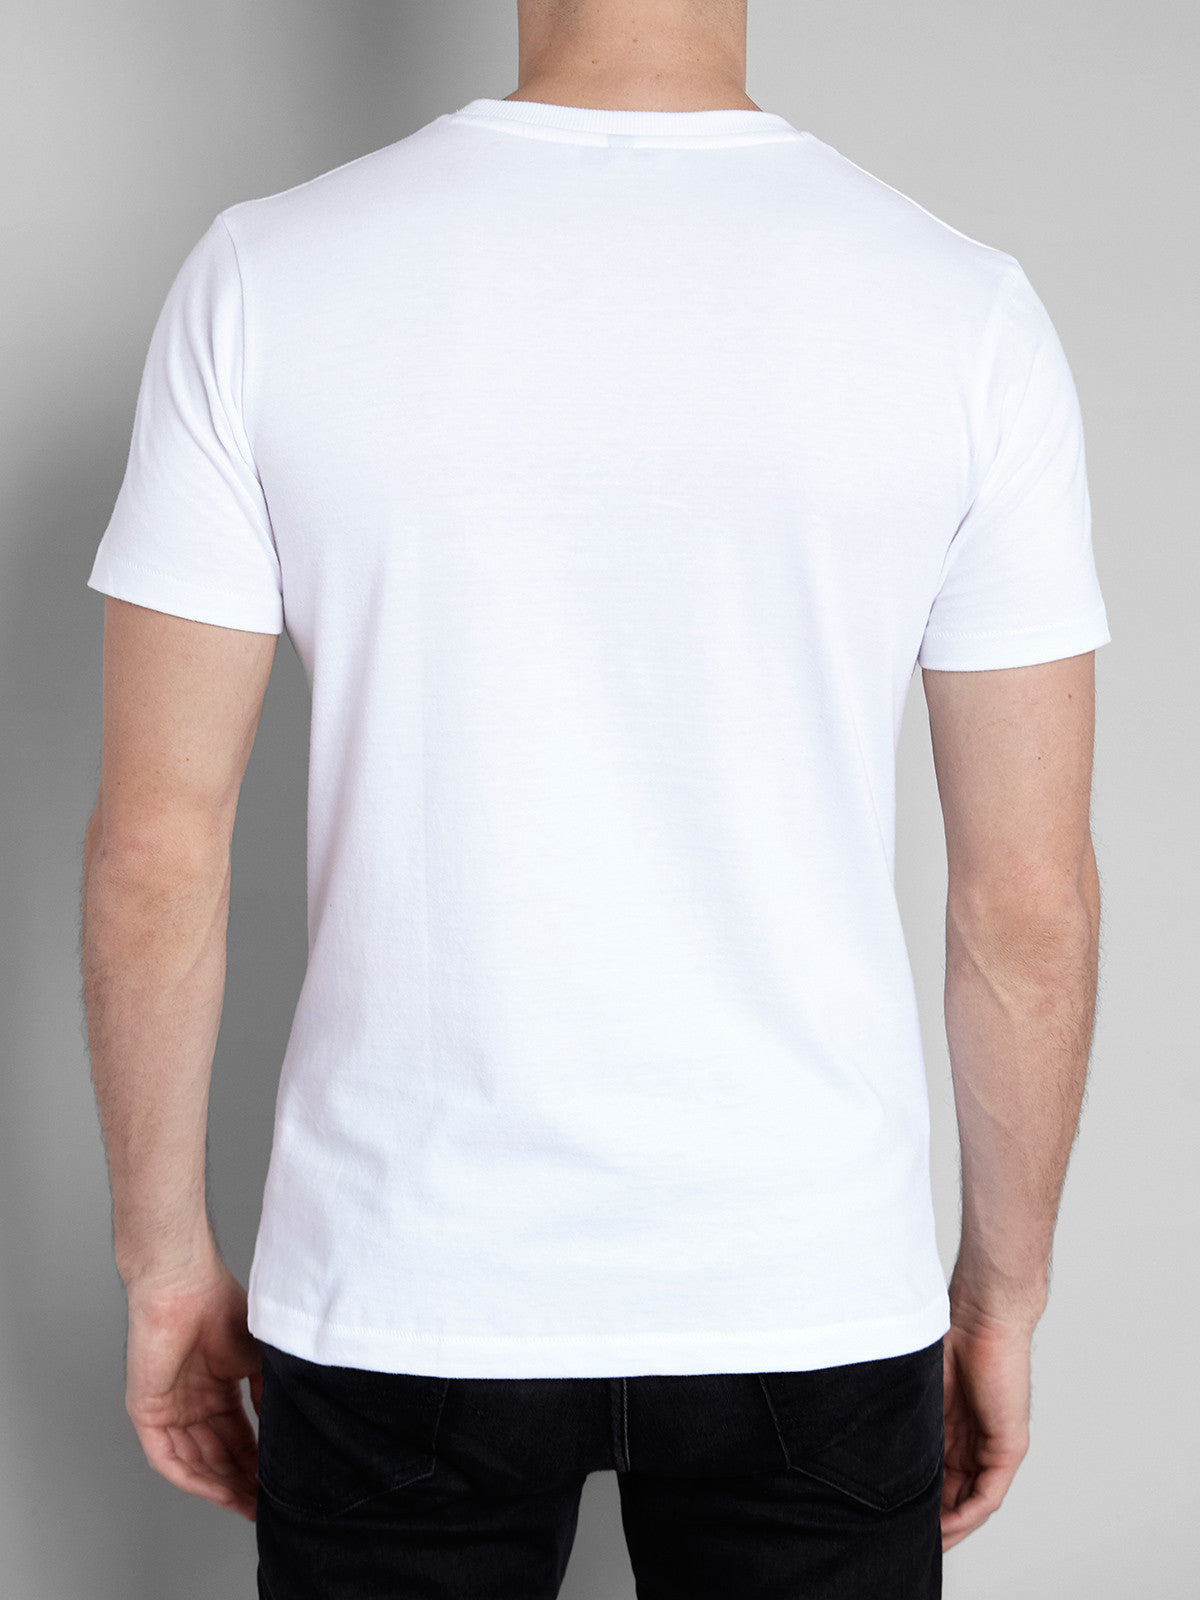 HH Cotton Jersey T-Shirt